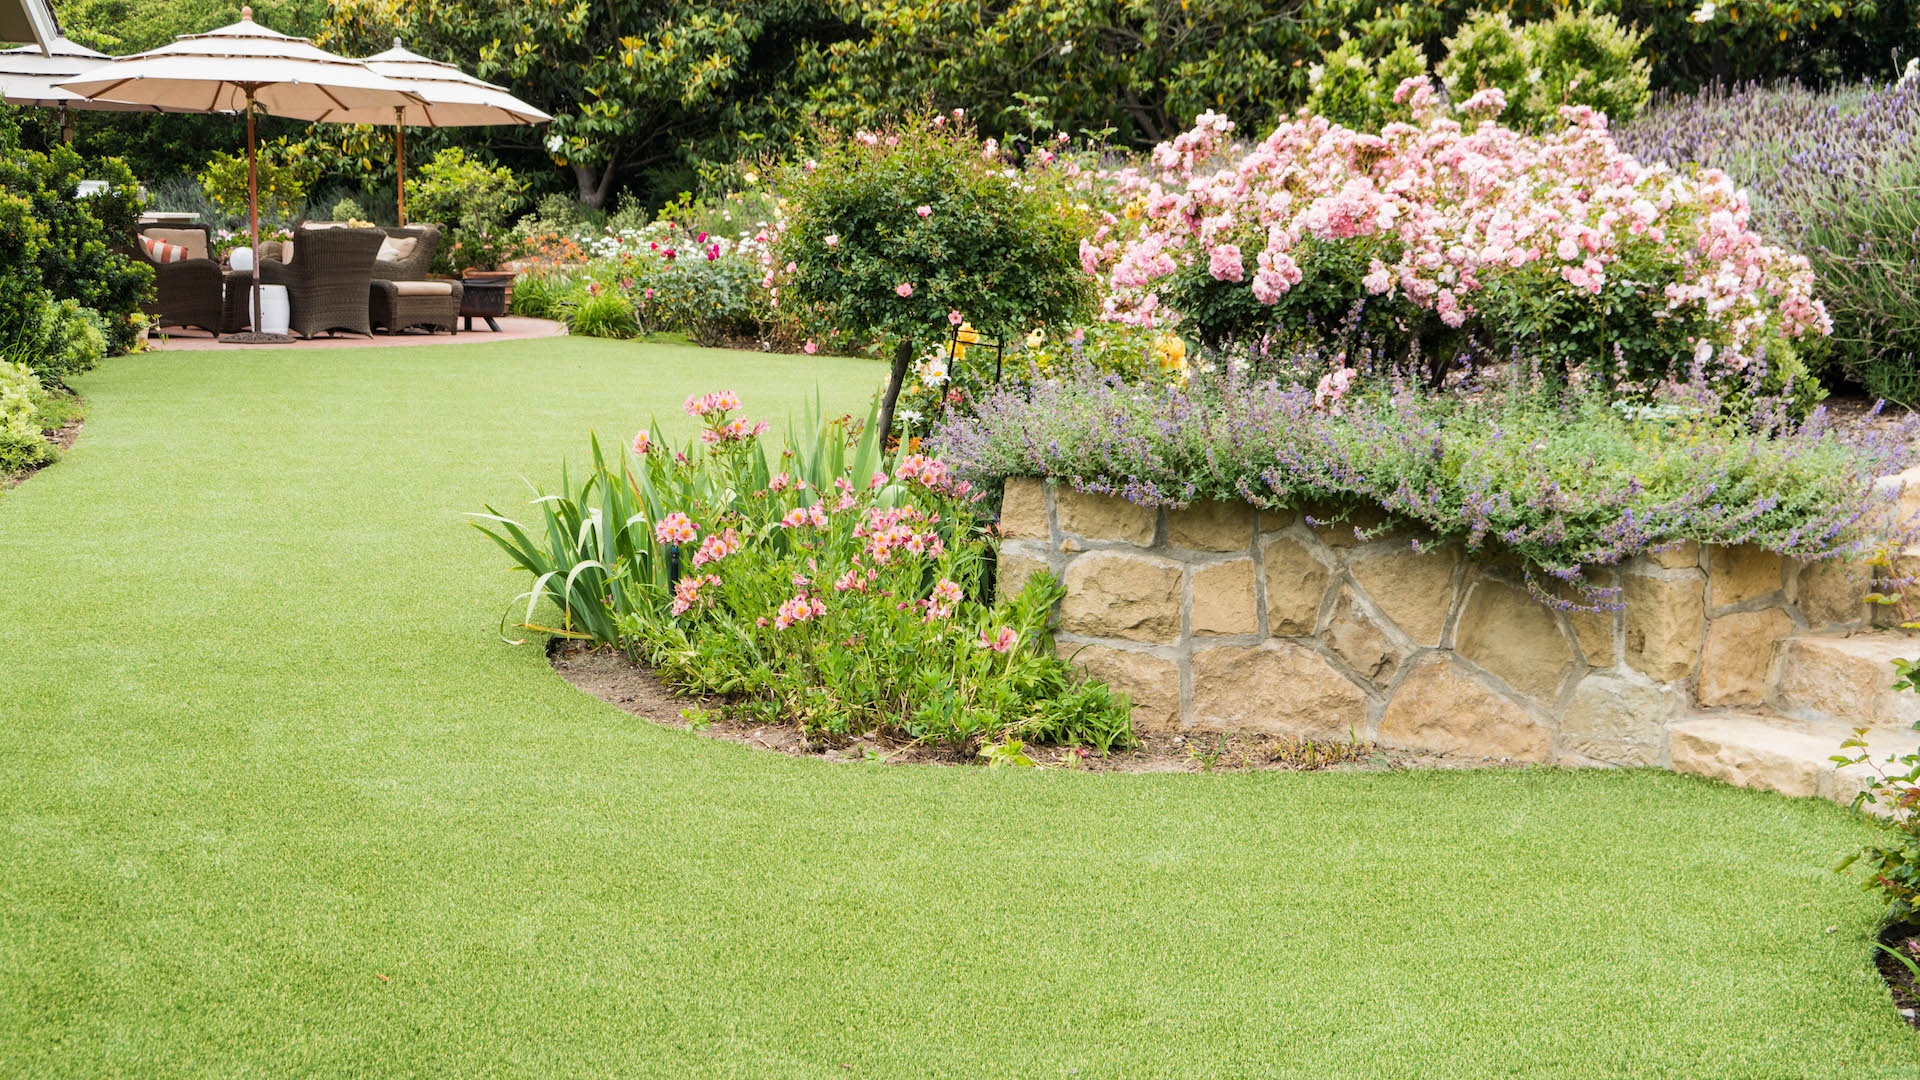 synthetic grass for low maintenance yards by EcoLawn Santa Barbara